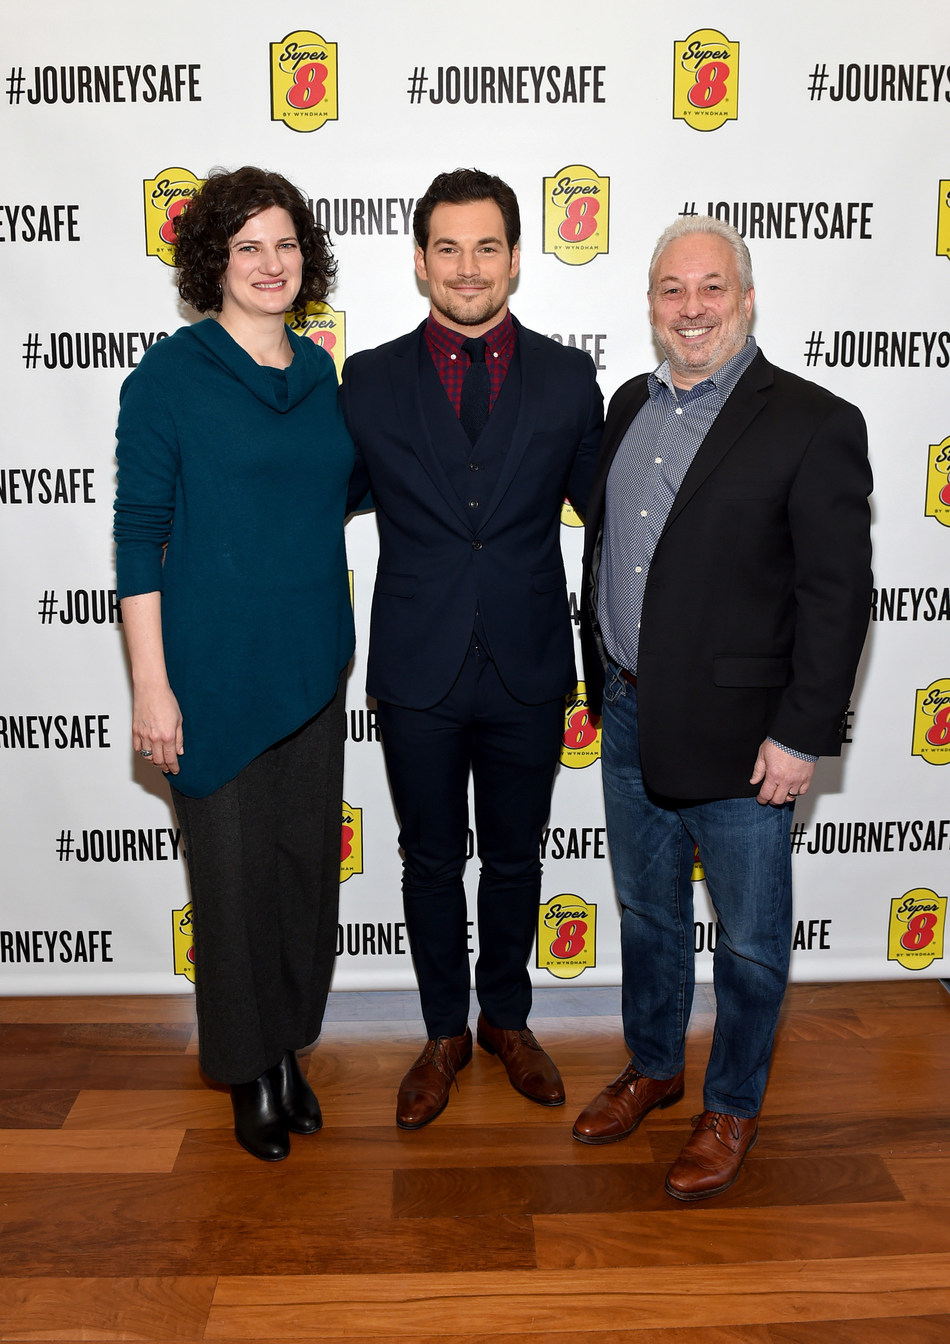 Giacomo Gianniotti, philanthropist and actor, Dr. Janet Kennedy Ph.D., sleep expert and licensed clinical psychologist and Mike Mueller, Super 8 brand senior vice president, address the audience at Super 8 by Wyndham's Journey Safe event on Thursday, March 7 2019 in New York, NY.  The #JourneySafe campaign launches during National Sleep Awareness Month and helps raise awareness and educate the public of the dangers of drowsy driving. Visit Super8.com/journeysafe to learn more.